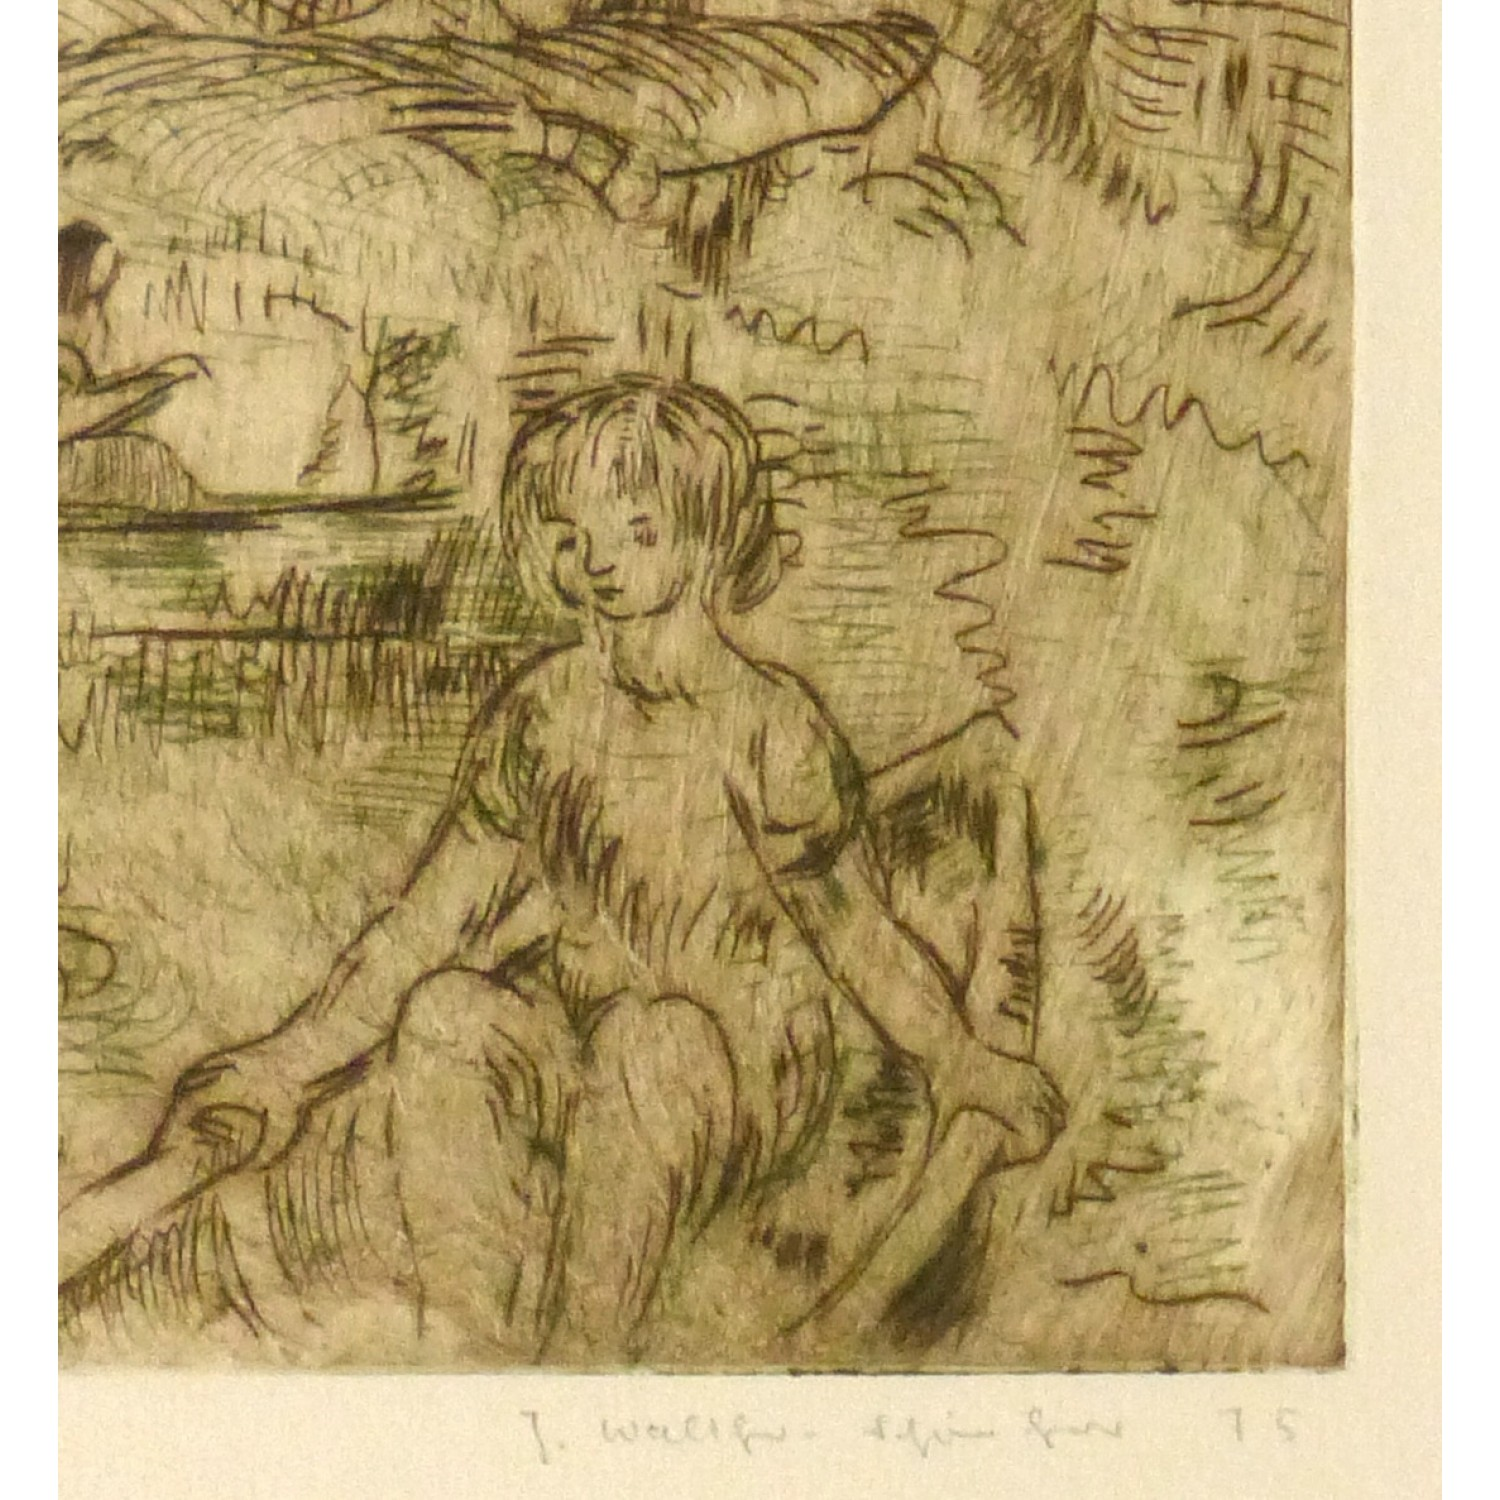 Vintage Aquatint Etching by Julla Walther Golden Pond - signature detail - 9153m